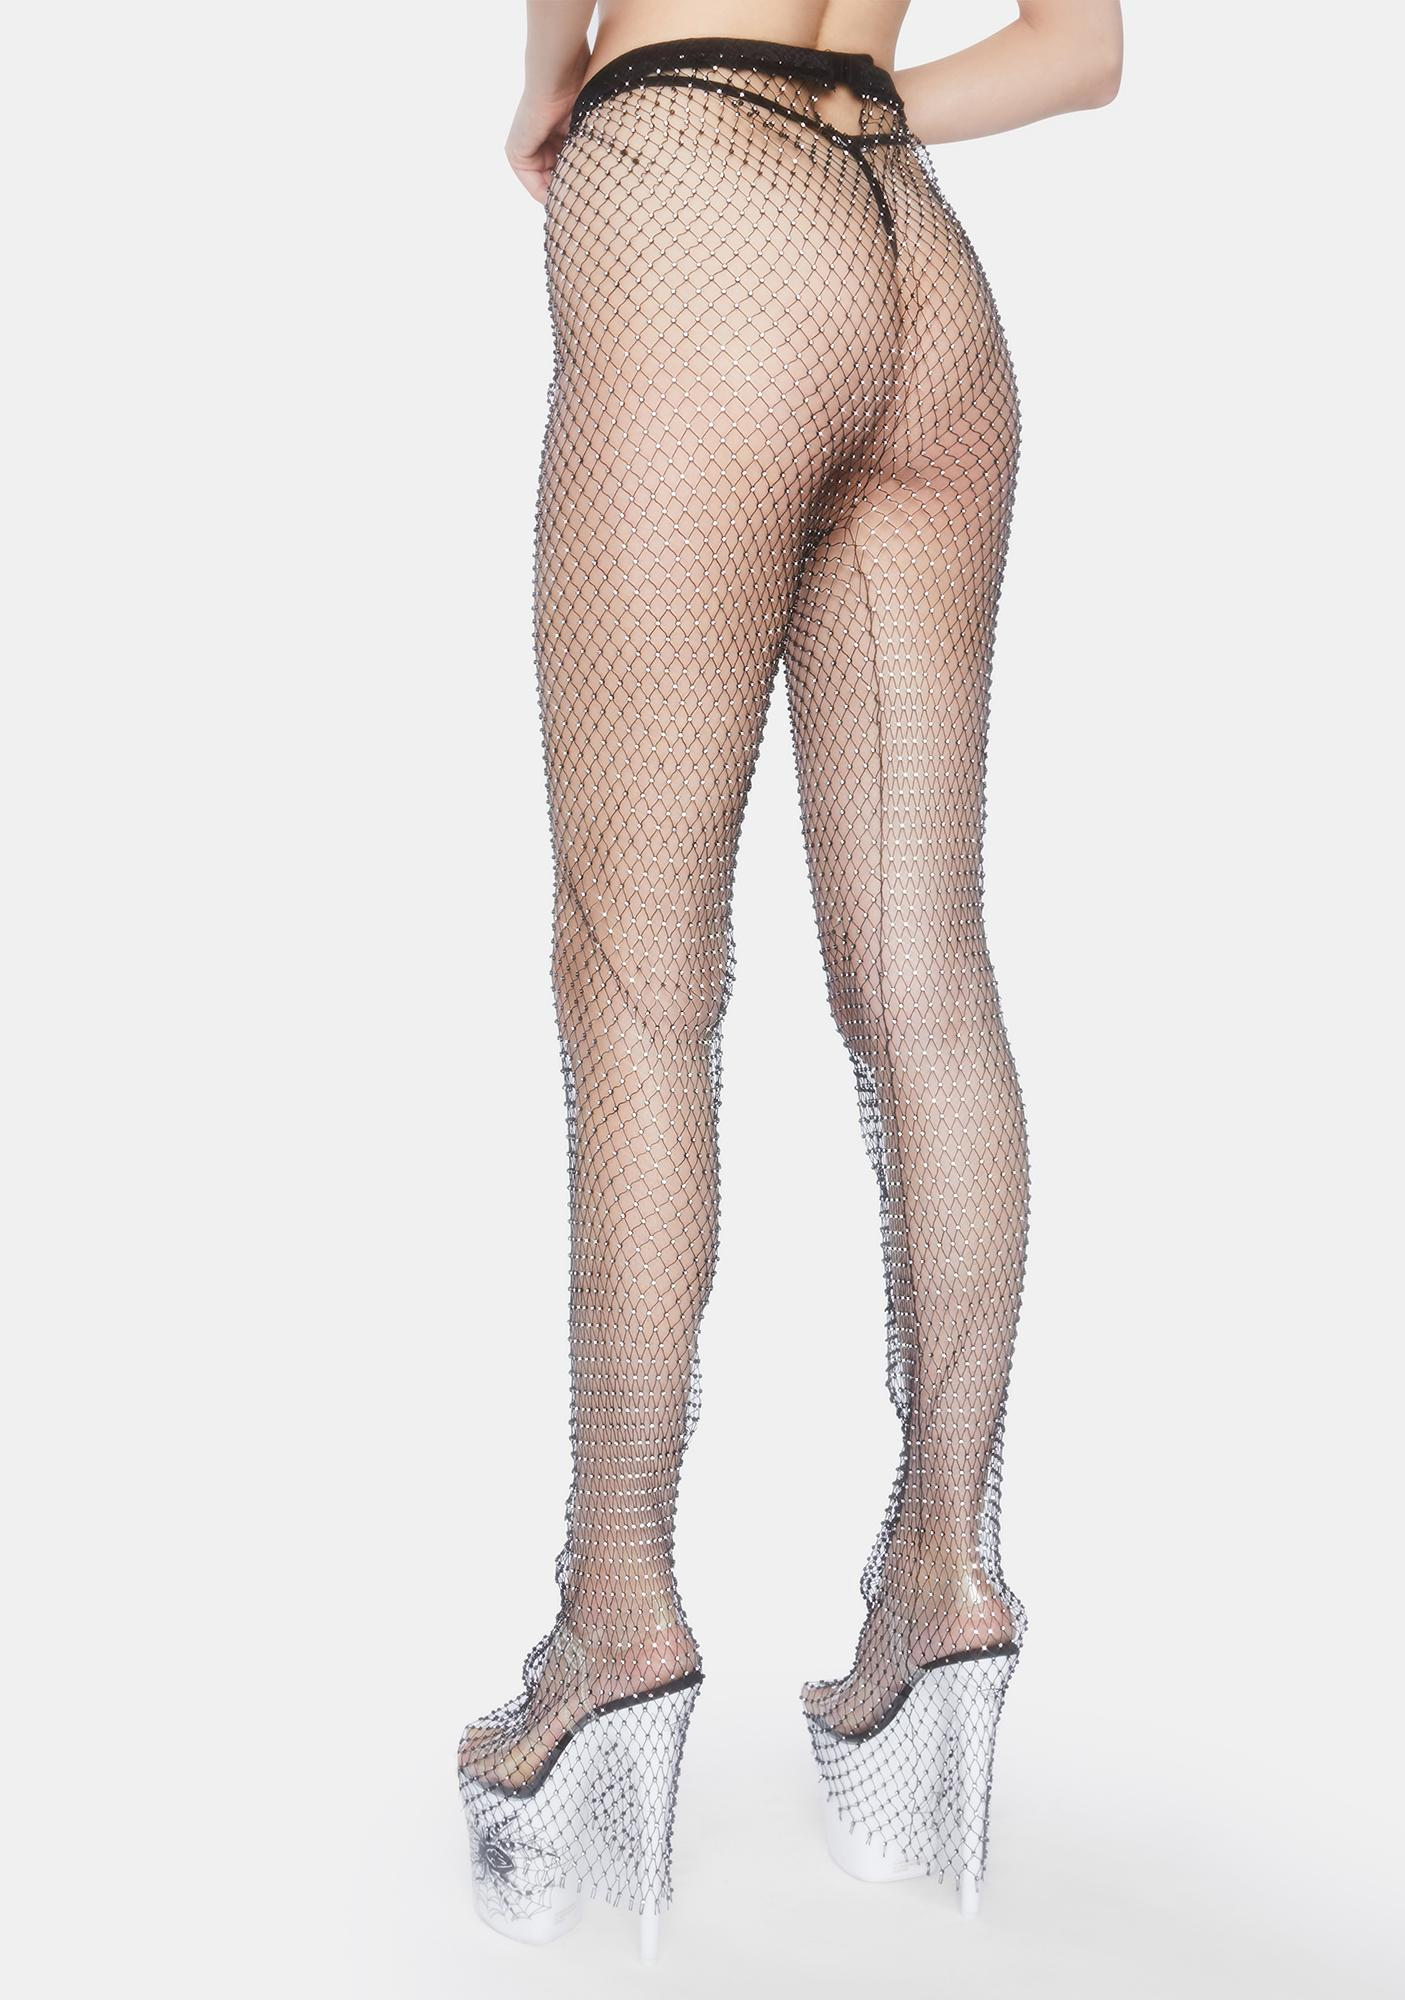 Forplay Sparkle N' Shine Fishnet Legging Set